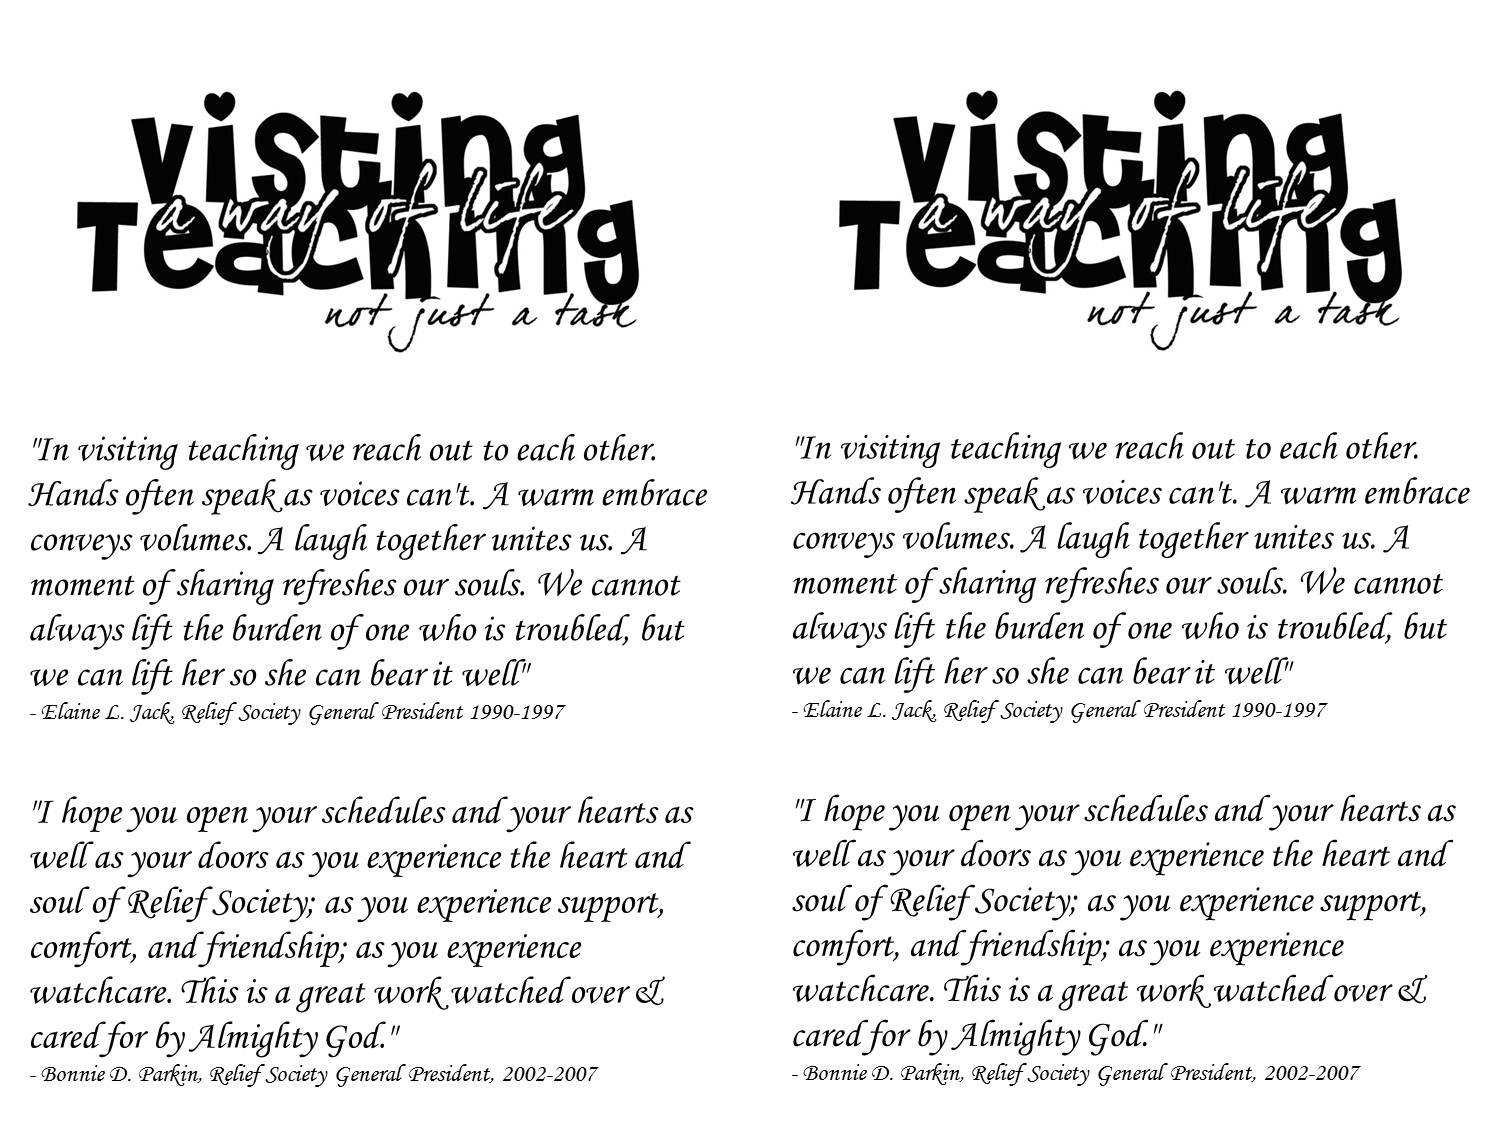 Teaching Quotes Easy Ways To Serve Inspirational Quotes For Visiting Teachers